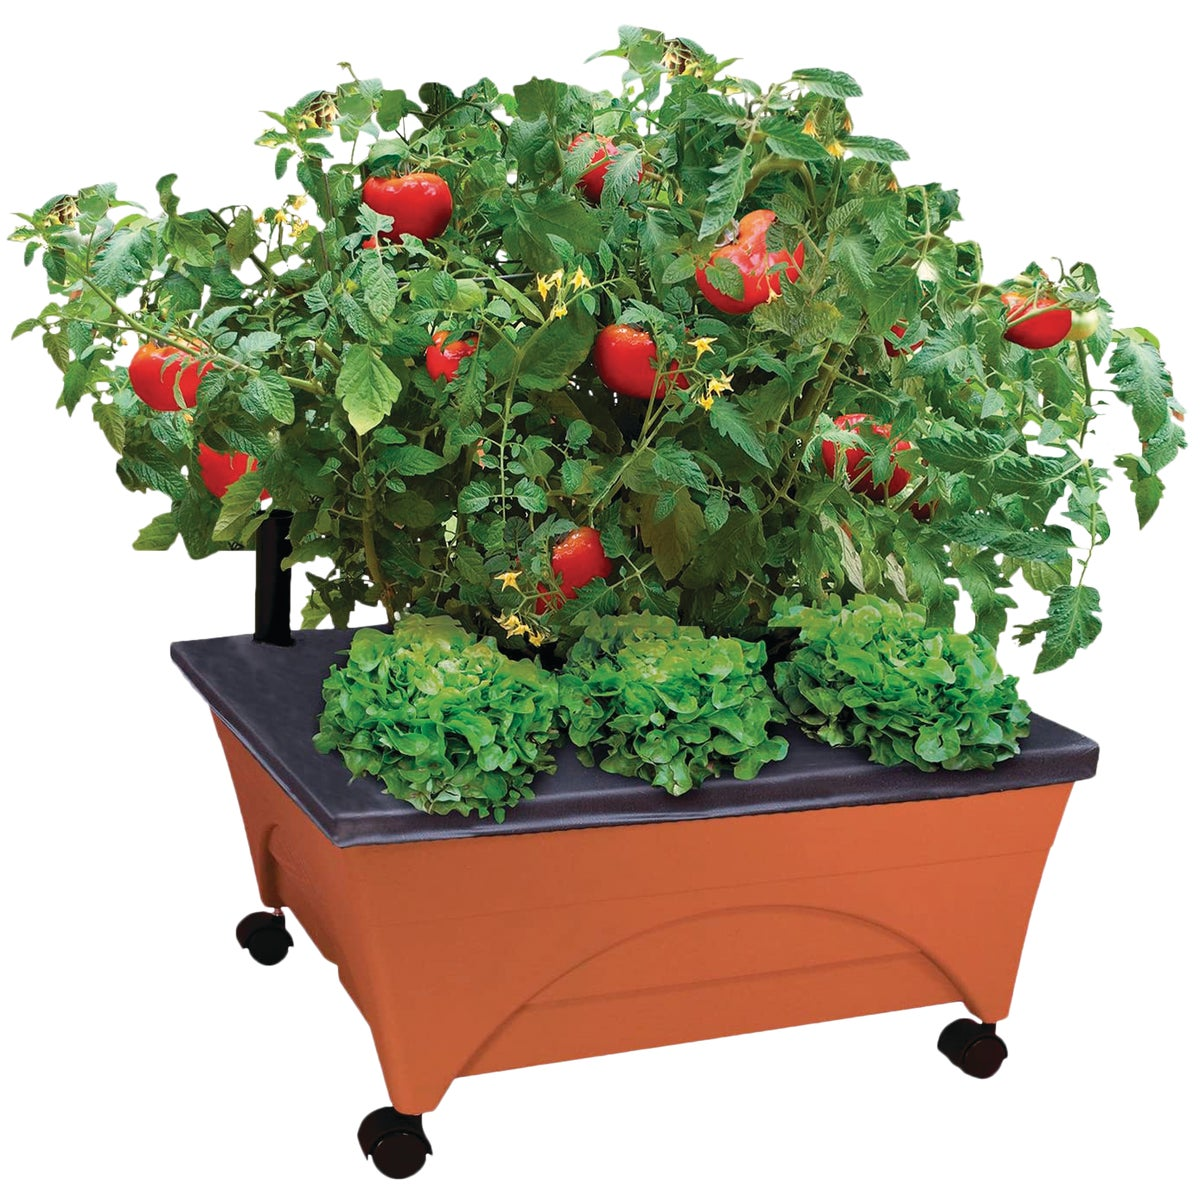 20X24 PATIO BOX PLANTER - 2340 by Emsco Group